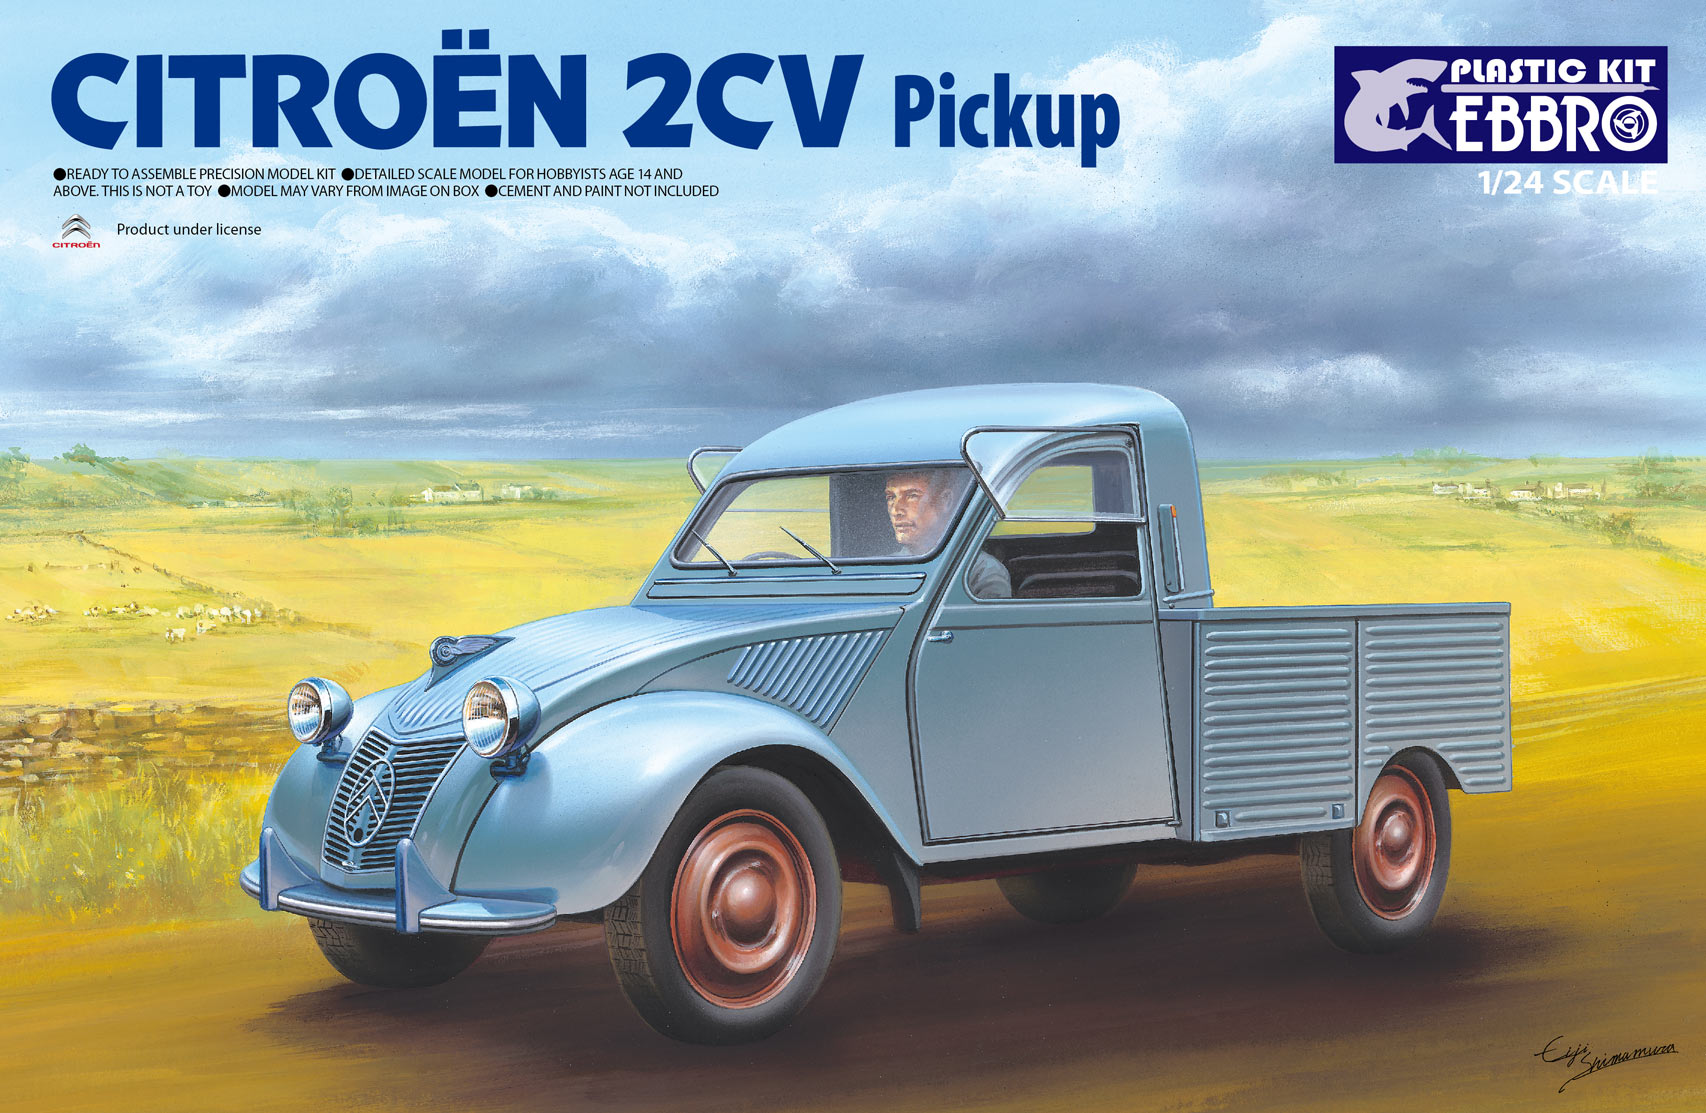 【25004】1/24 Citroen 2CV Pick up  【PLASTIC KIT】